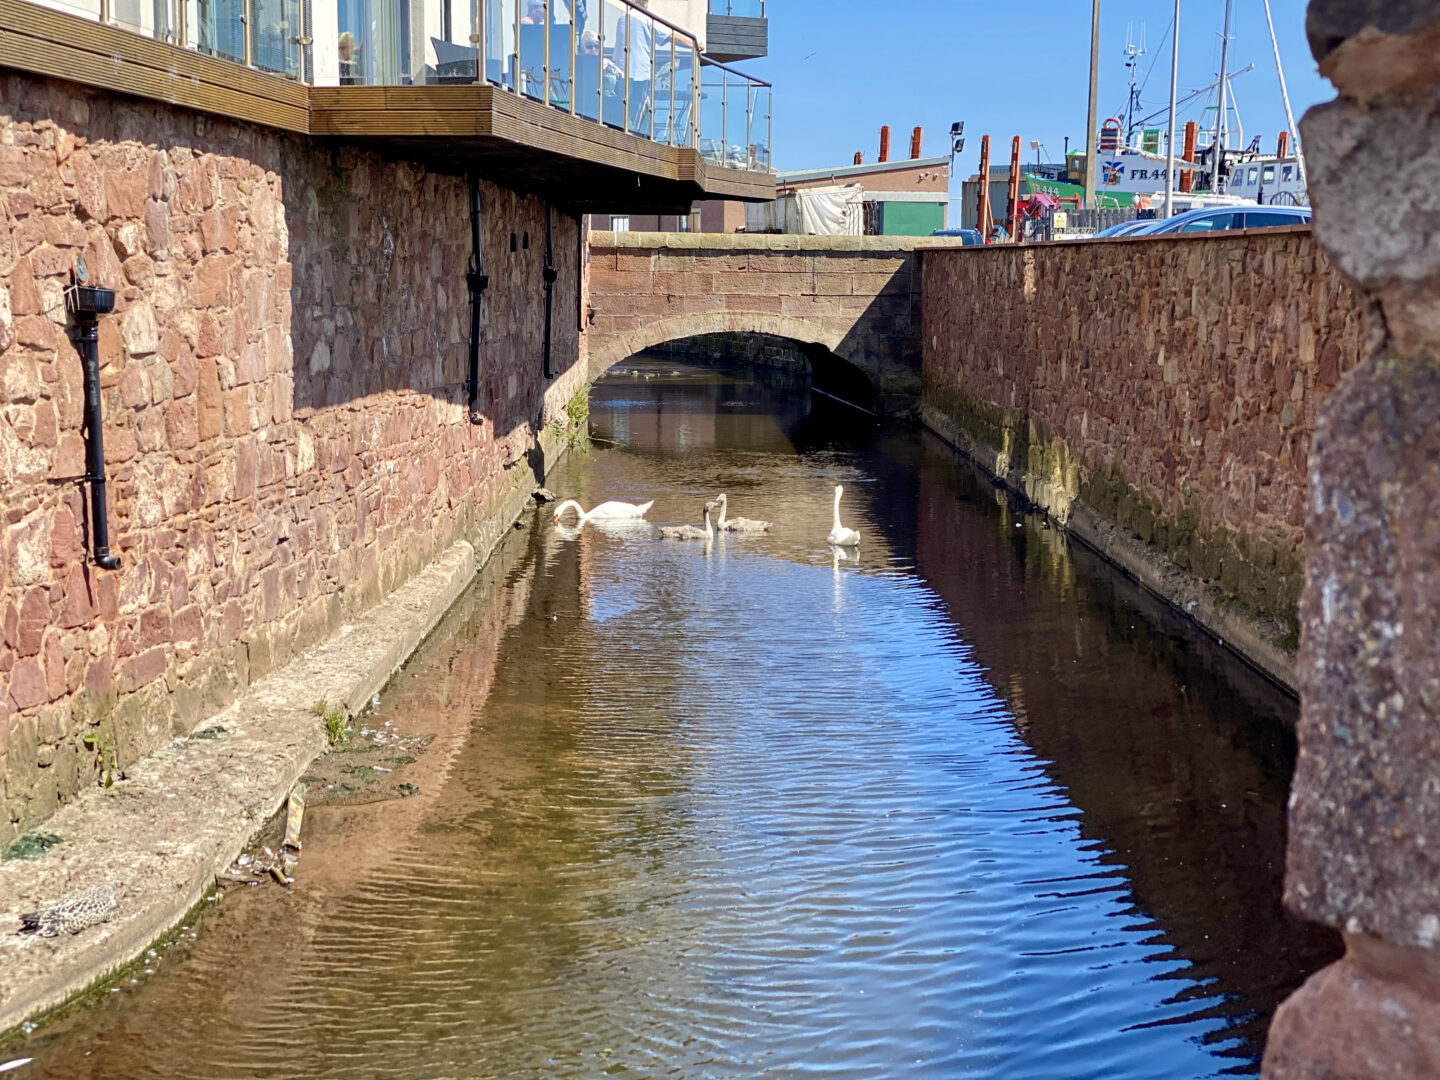 Some swans at the canal at Arbroath Harbour